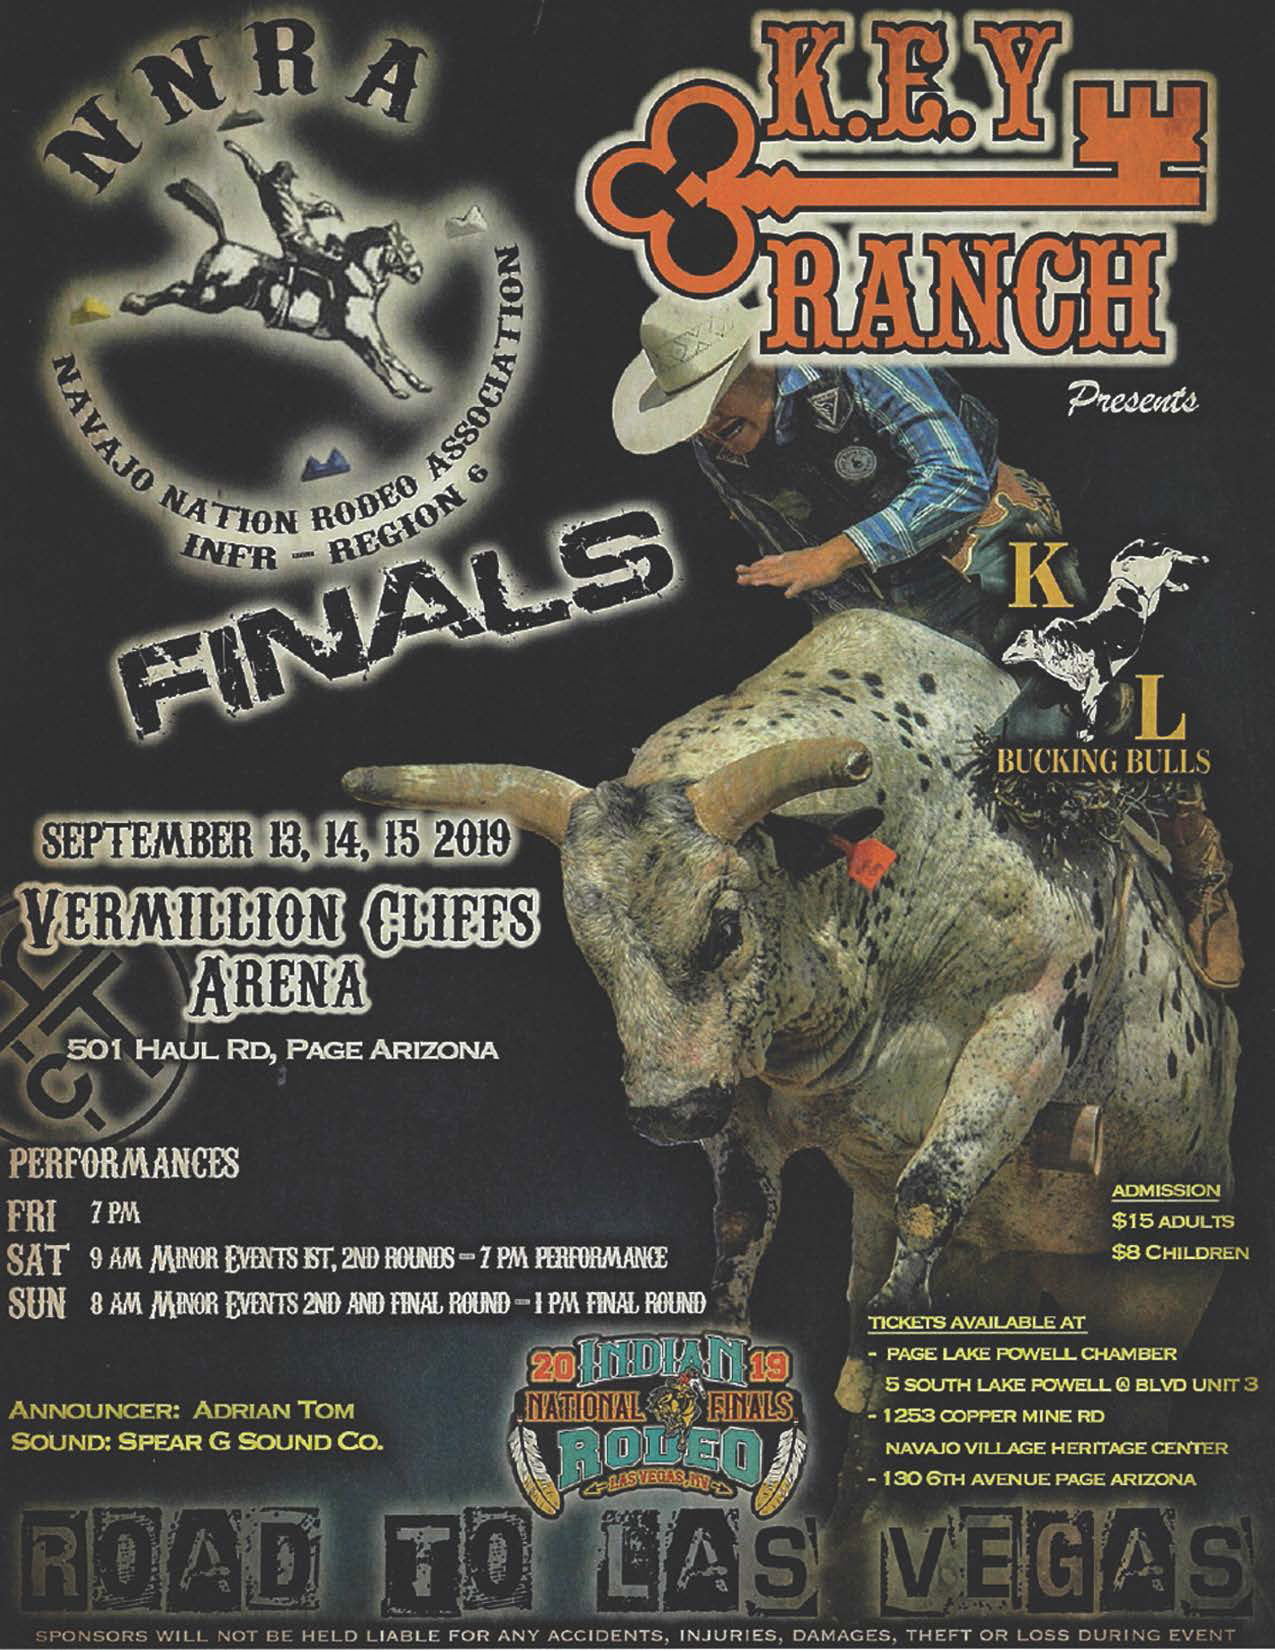 NNRA RODEO